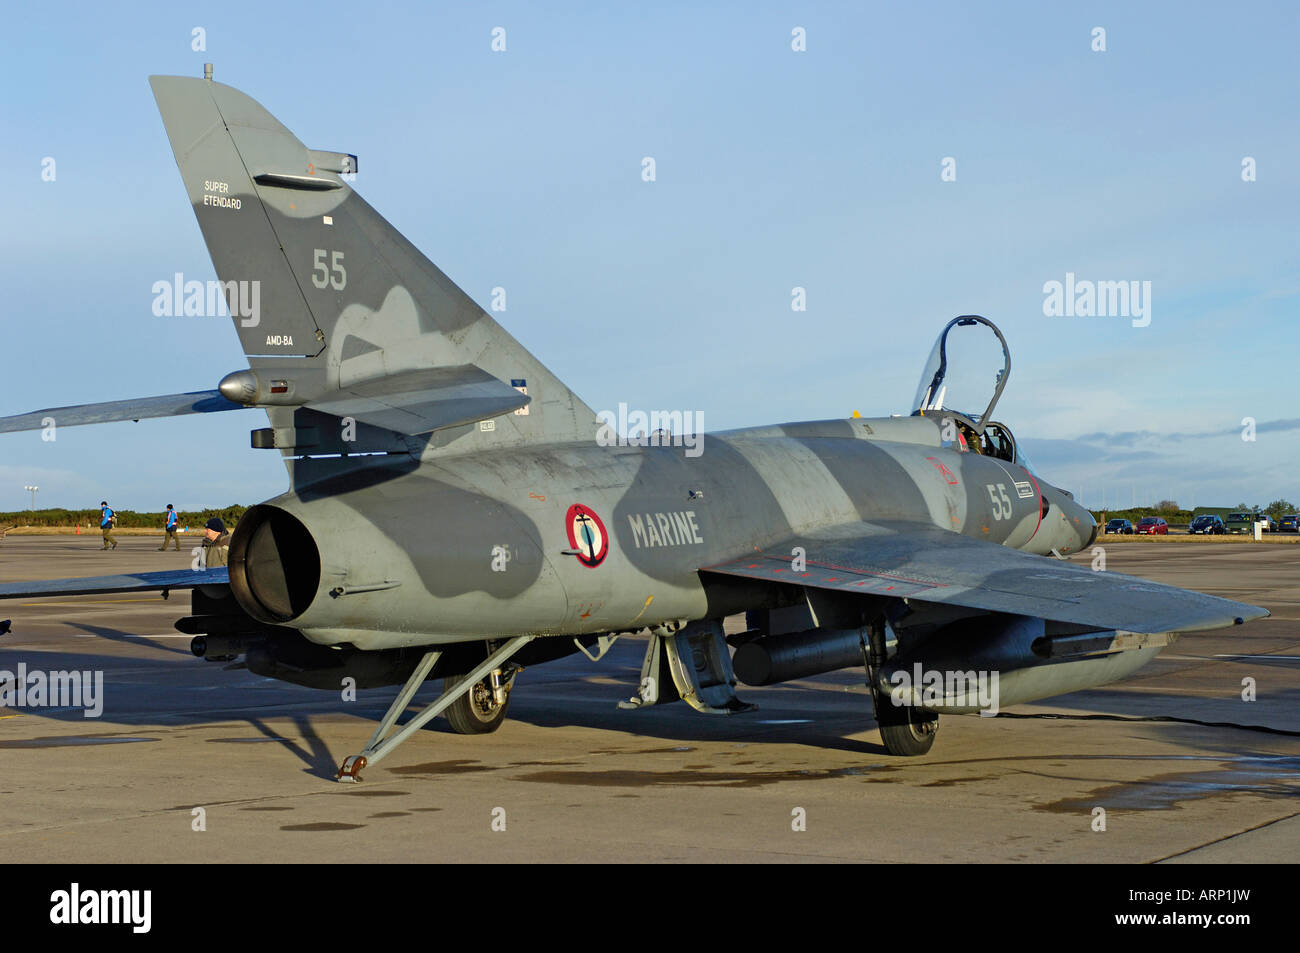 French Super Etendard Military Fighter Jet Aircraft Stock Photo